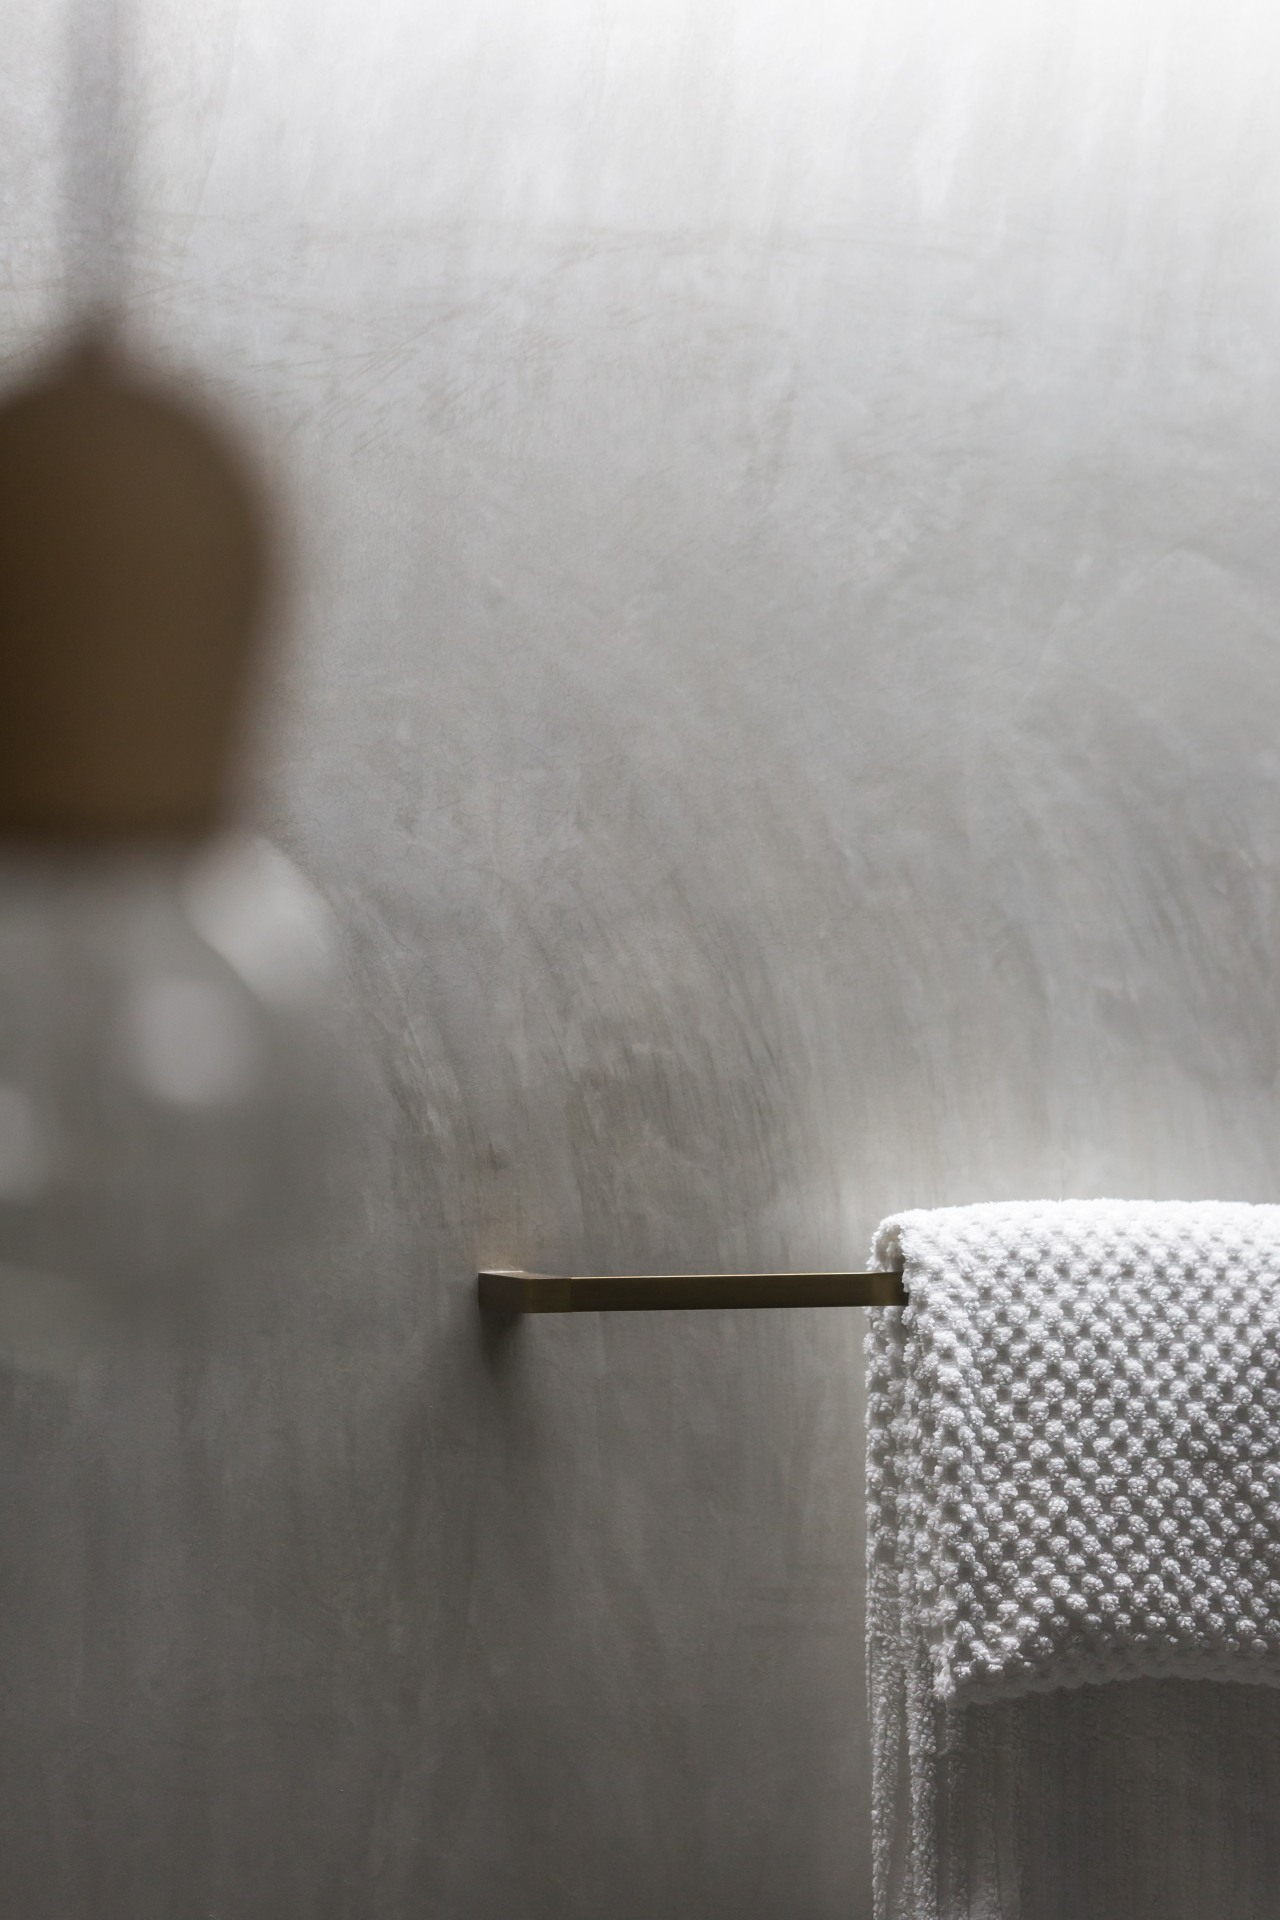 Burnished brass accessories bring a rich accent to floor, wall, grey tiles,  Arc Seven, towel rail, brass